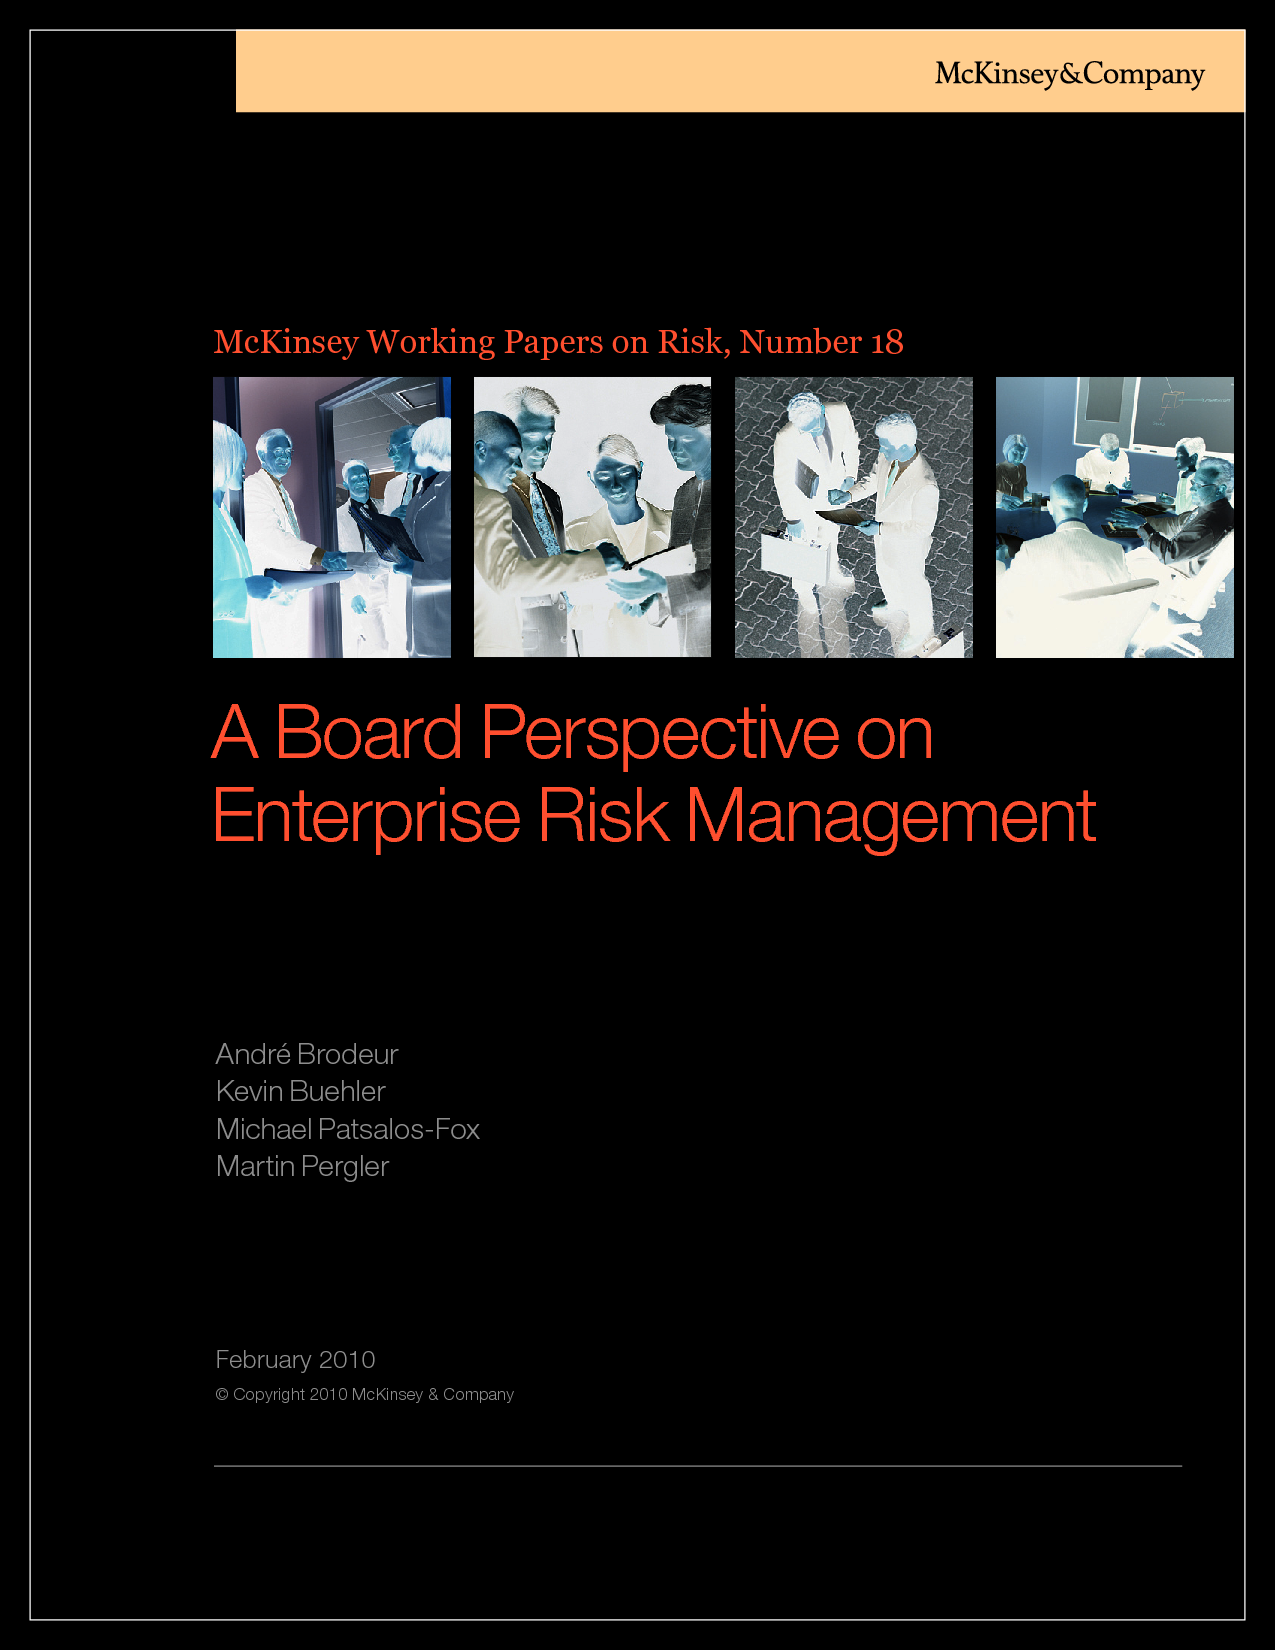 research papers on enterprise risk management Effective erm stakeholder engagement march the joint risk management research committee announces the release of a new report on enterprise risk management (erm) stakeholder engagement authored by kailan shang, this report examines current practices and identifies challenges to achieving erm stakeholder buy-in.